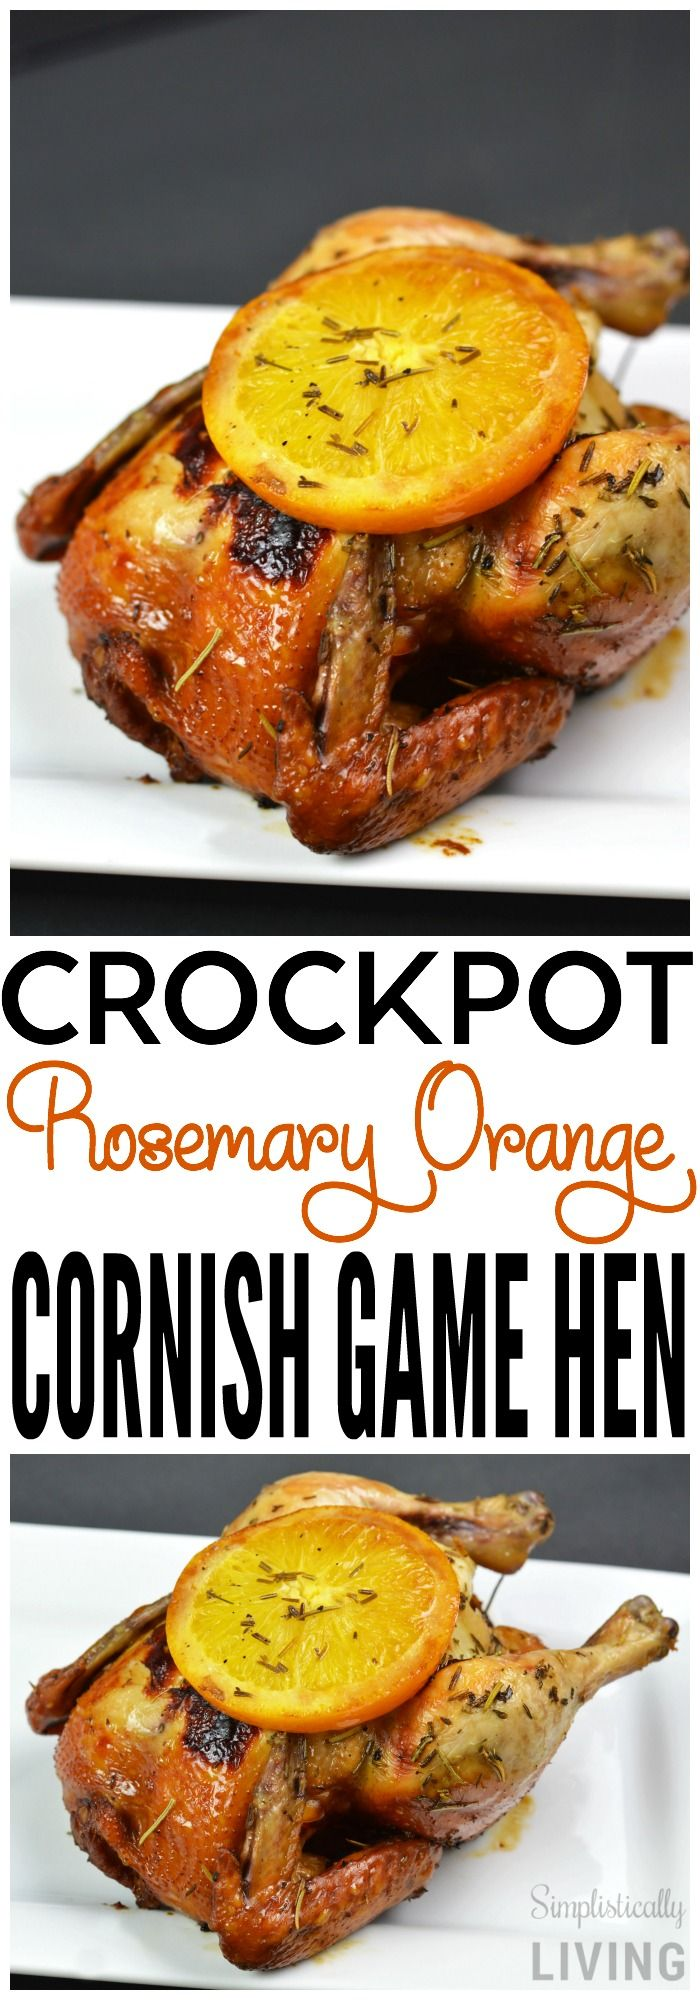 Crockpot Rosemary Orange Cornish Game Hen Chicken Simplistically Living